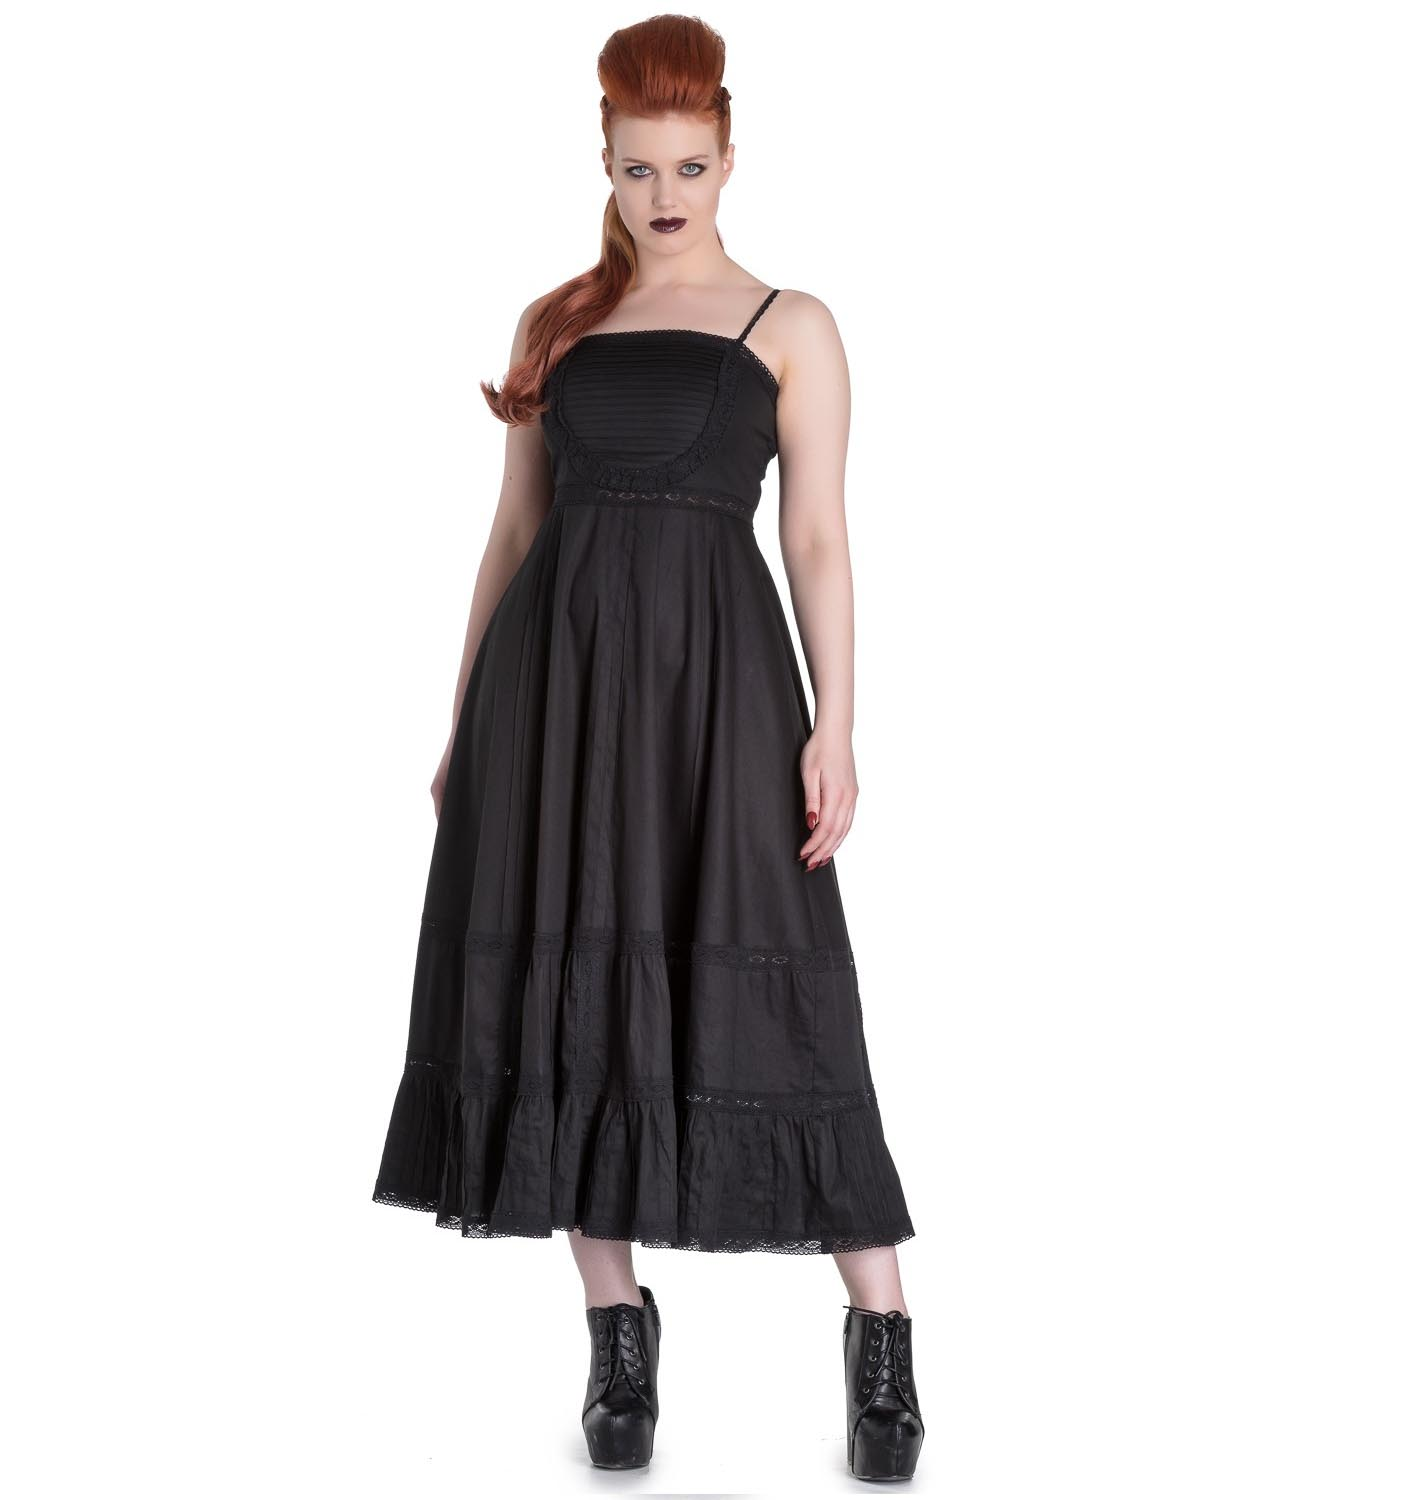 Hell-Bunny-Spin-Doctor-Goth-Maxi-Dress-ELIZABELLA-Black-All-Sizes thumbnail 11